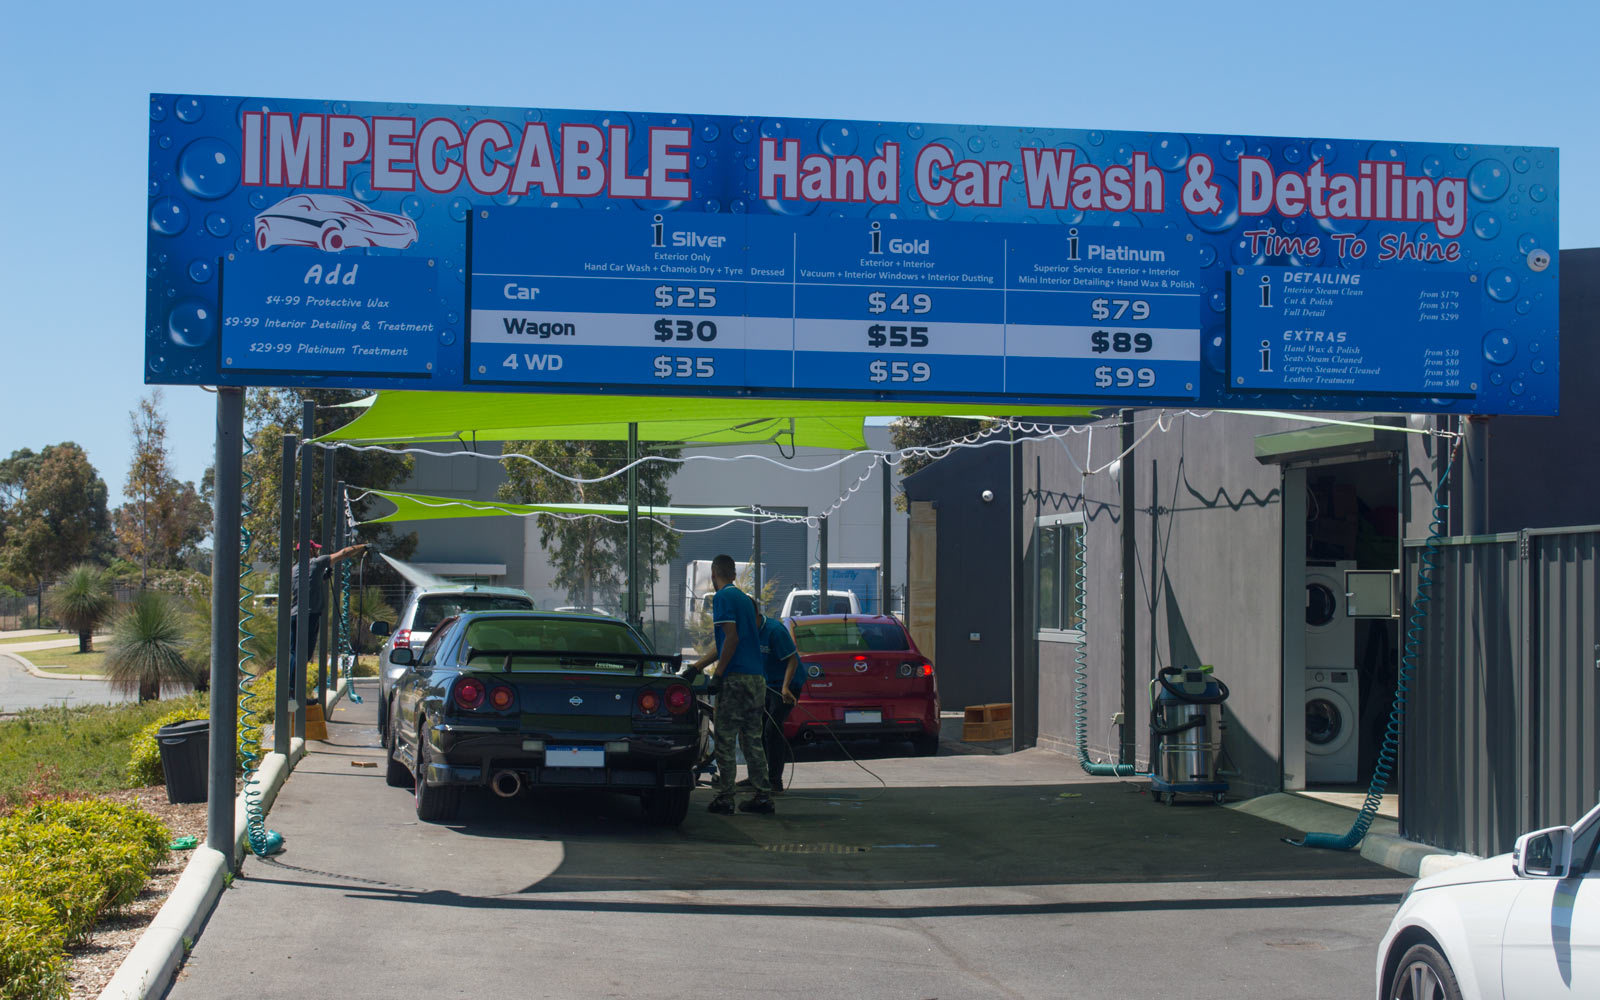 Impeccable Hand Car Wash & Detailing Rockingham Store